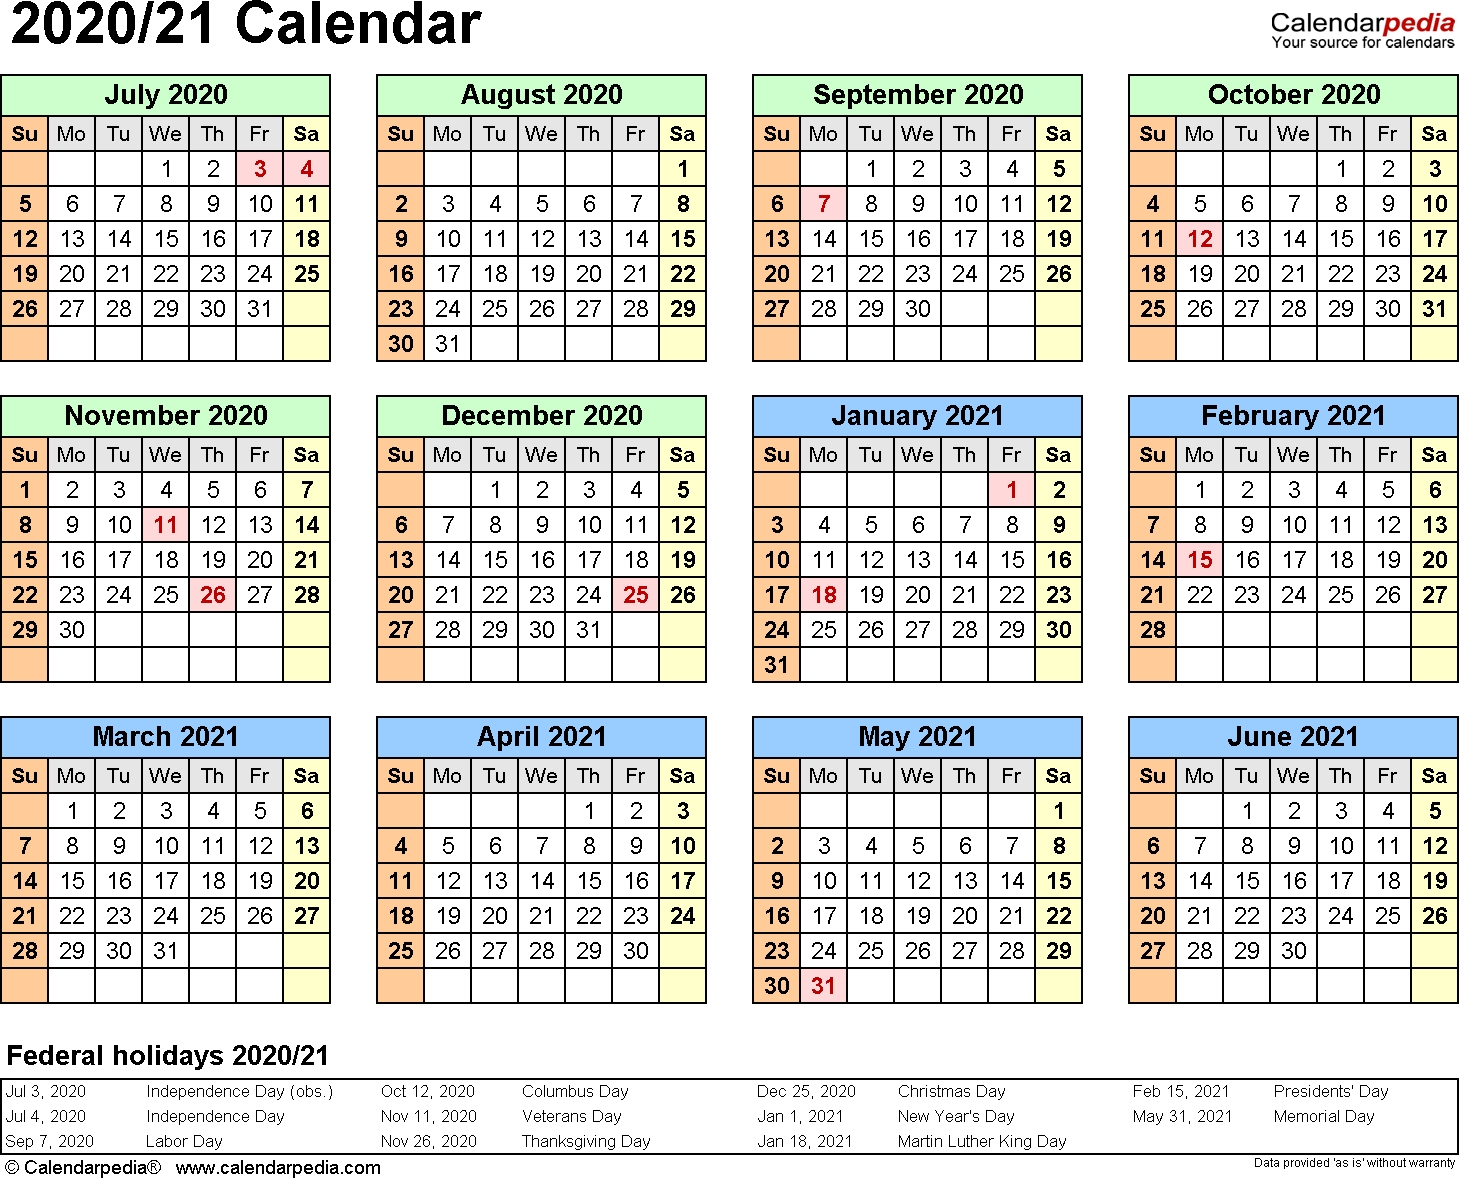 Split Year Calendars 2020/2021 (July To June) - Word Templates-Microsoft Word 2020 Calendar Template